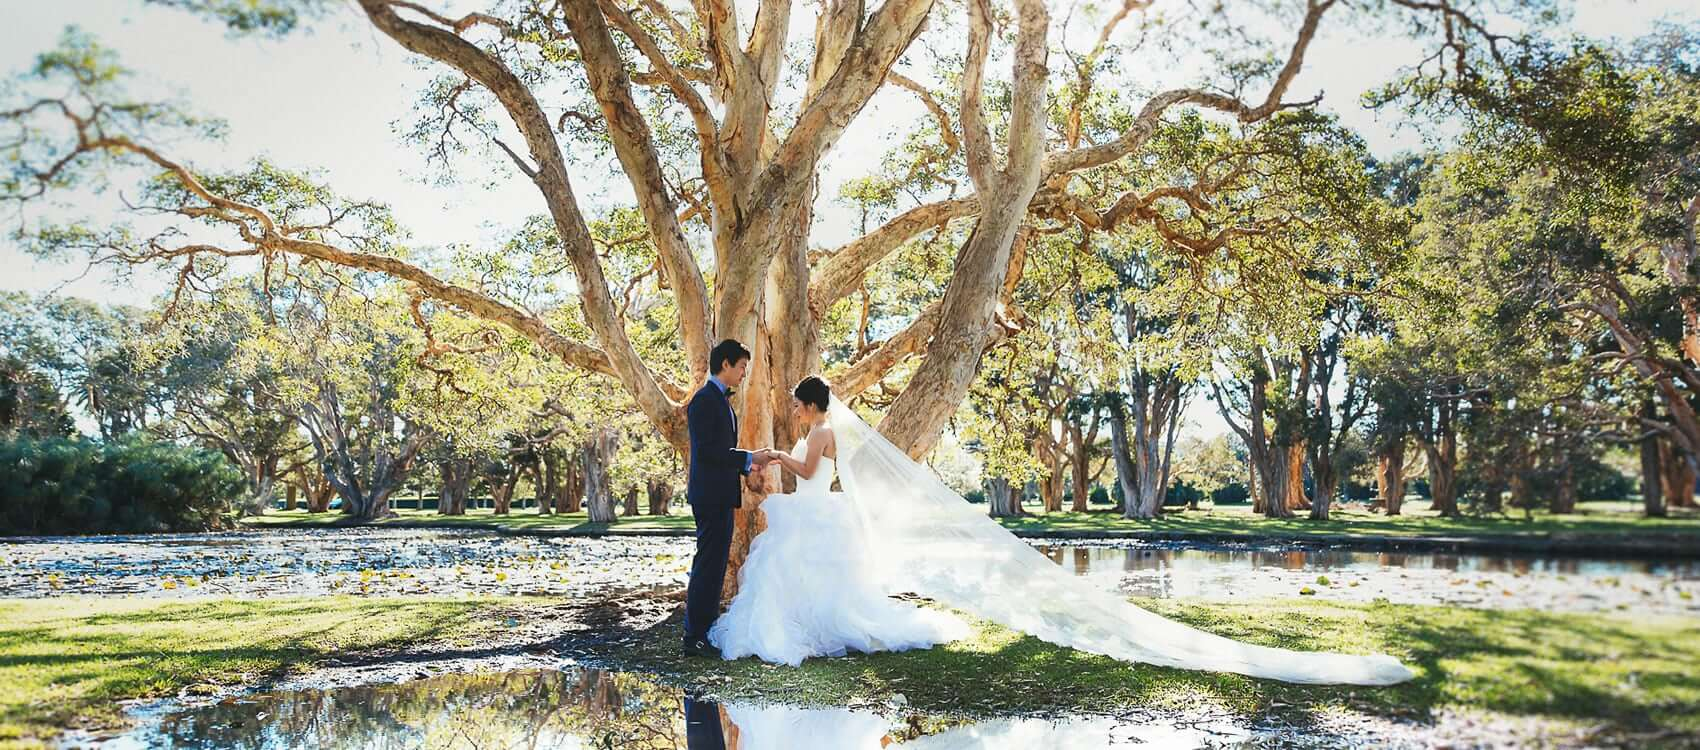 悉尼公园结婚Centennial Park Wedding